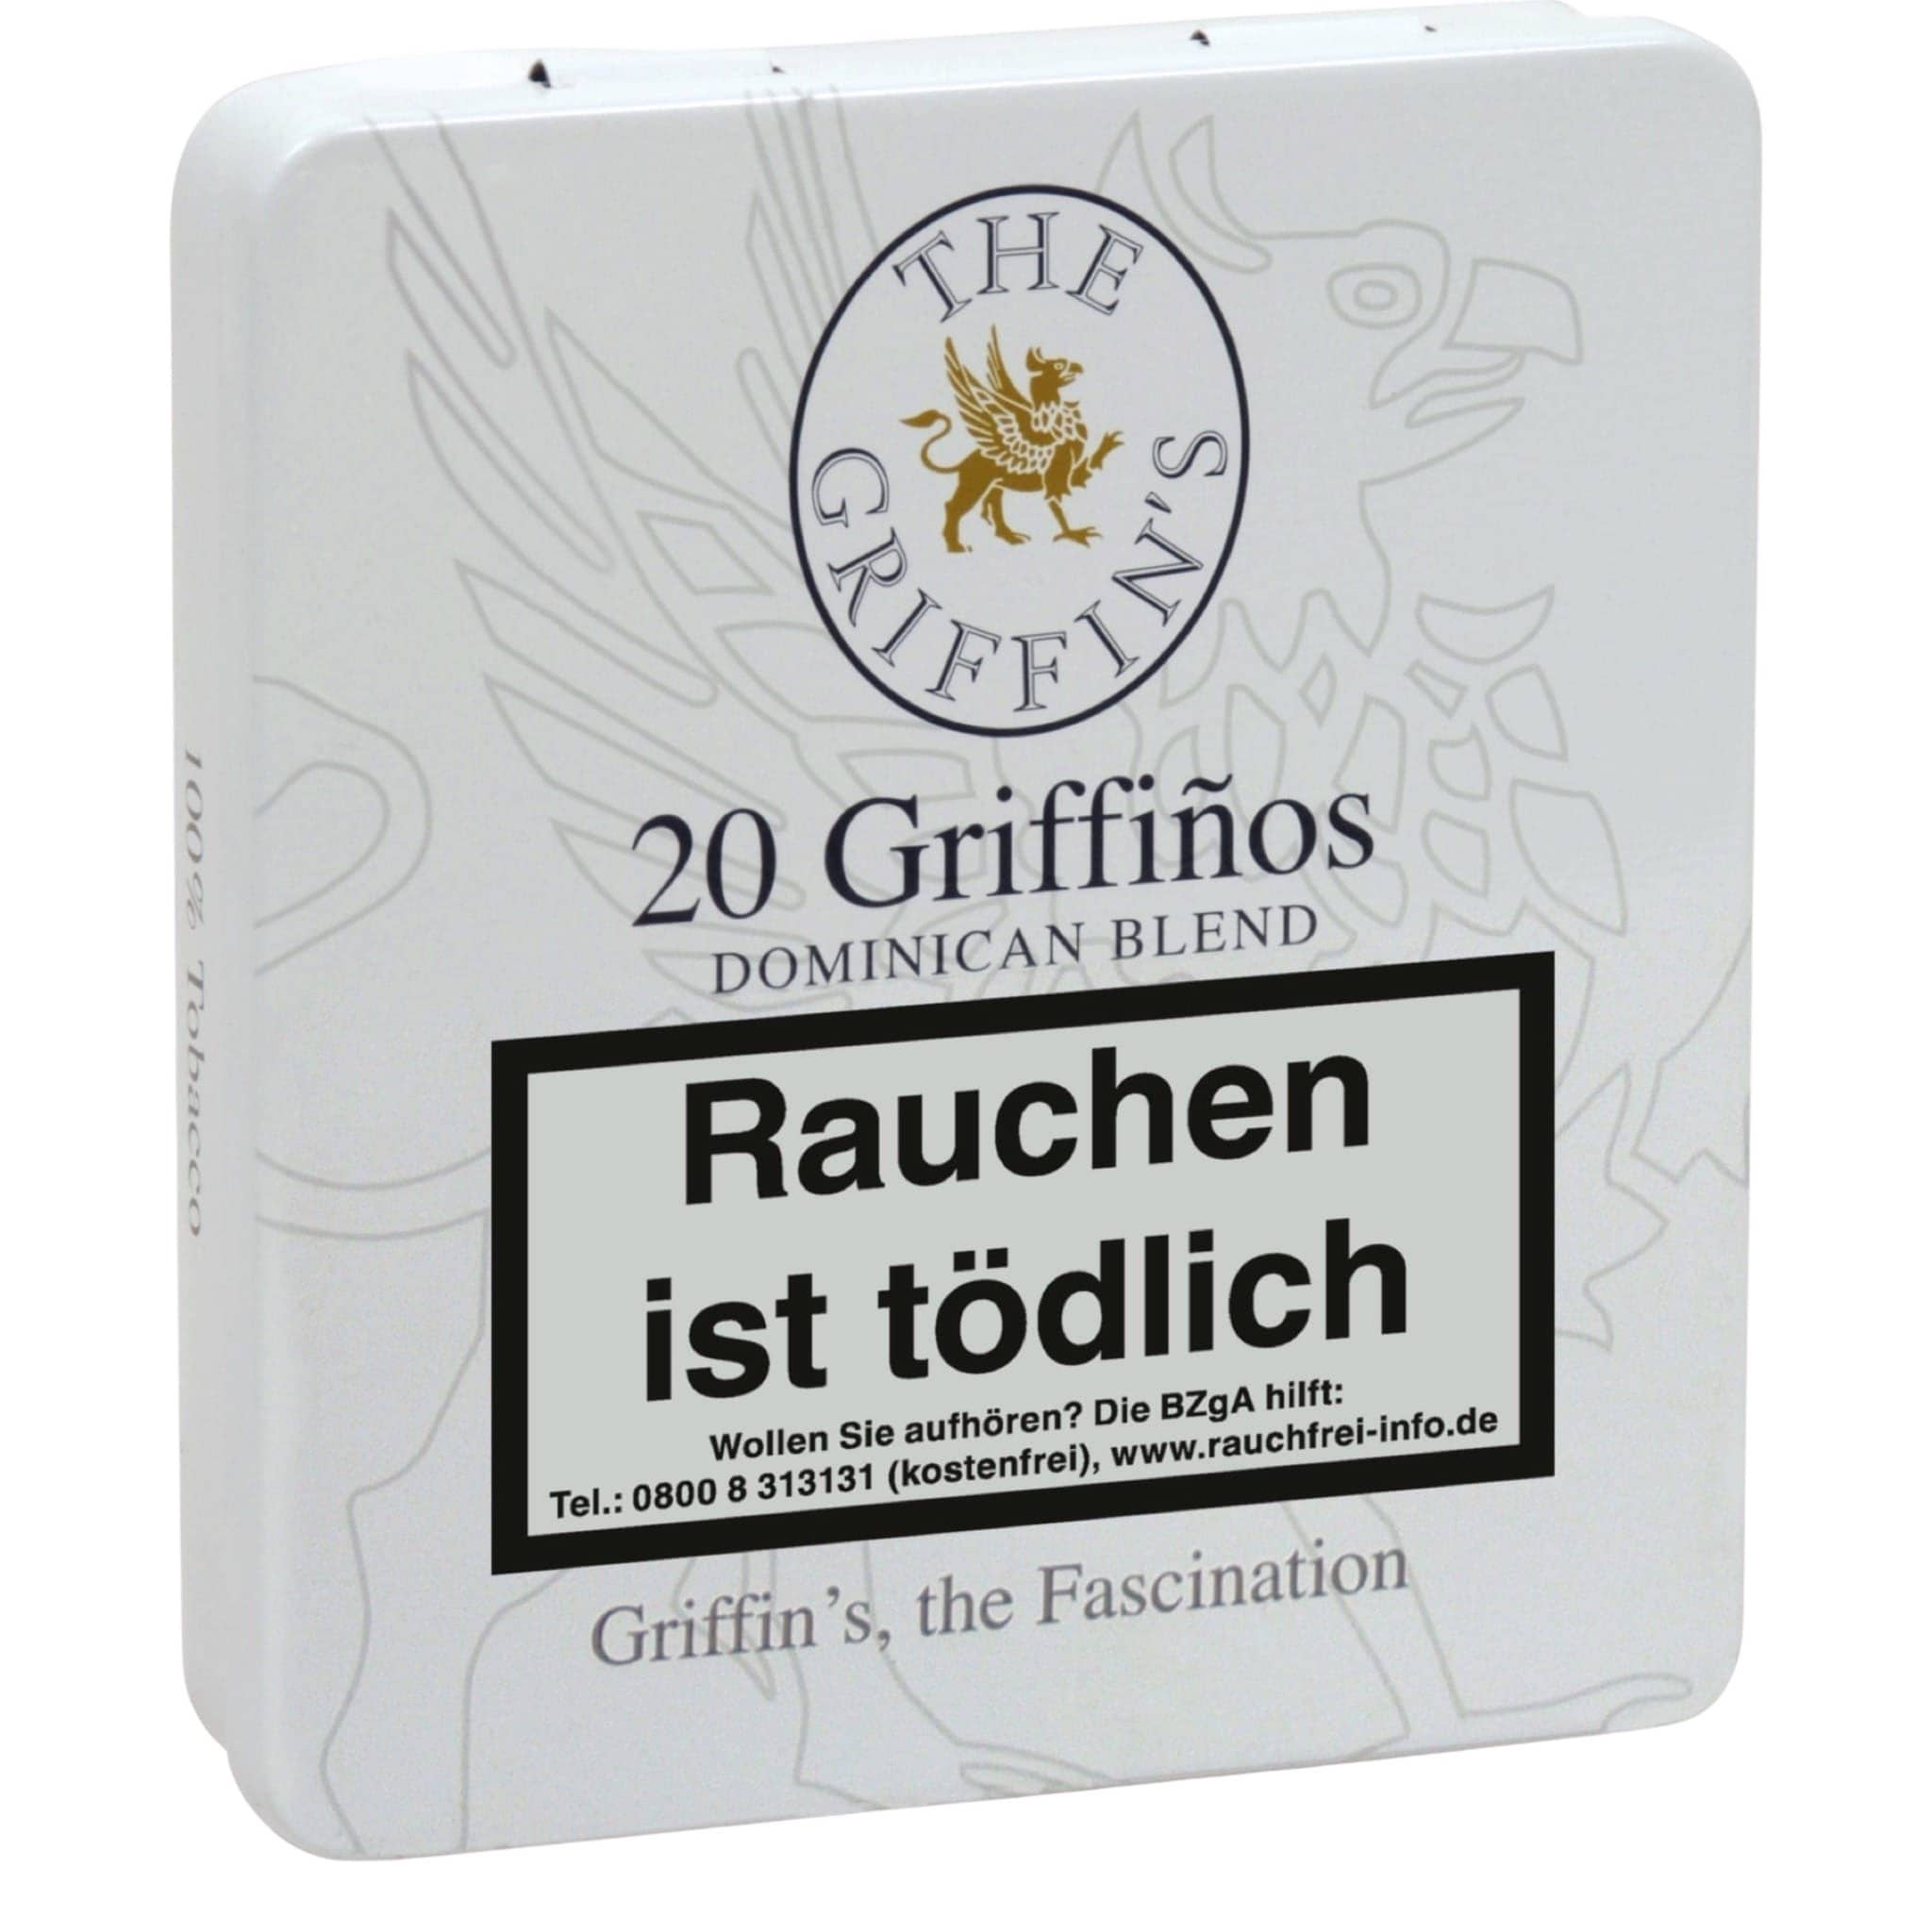 The Griffin's Griffinos 20er Packung